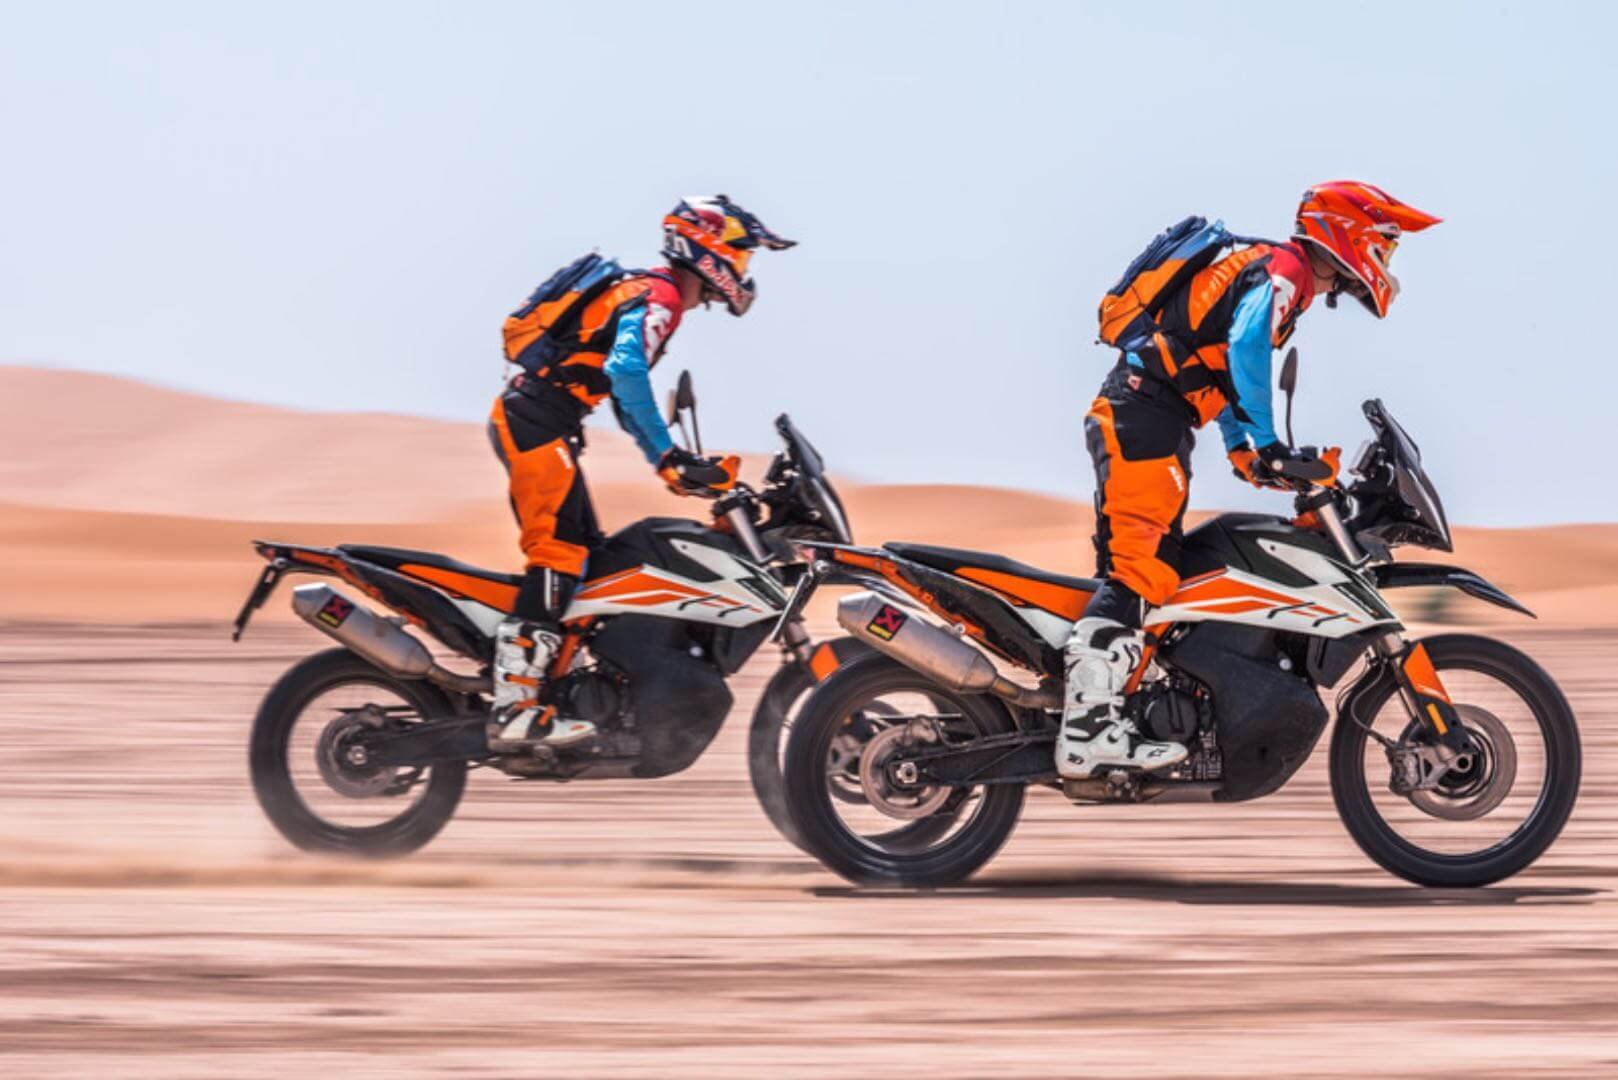 Two men riding the KTM 790 R